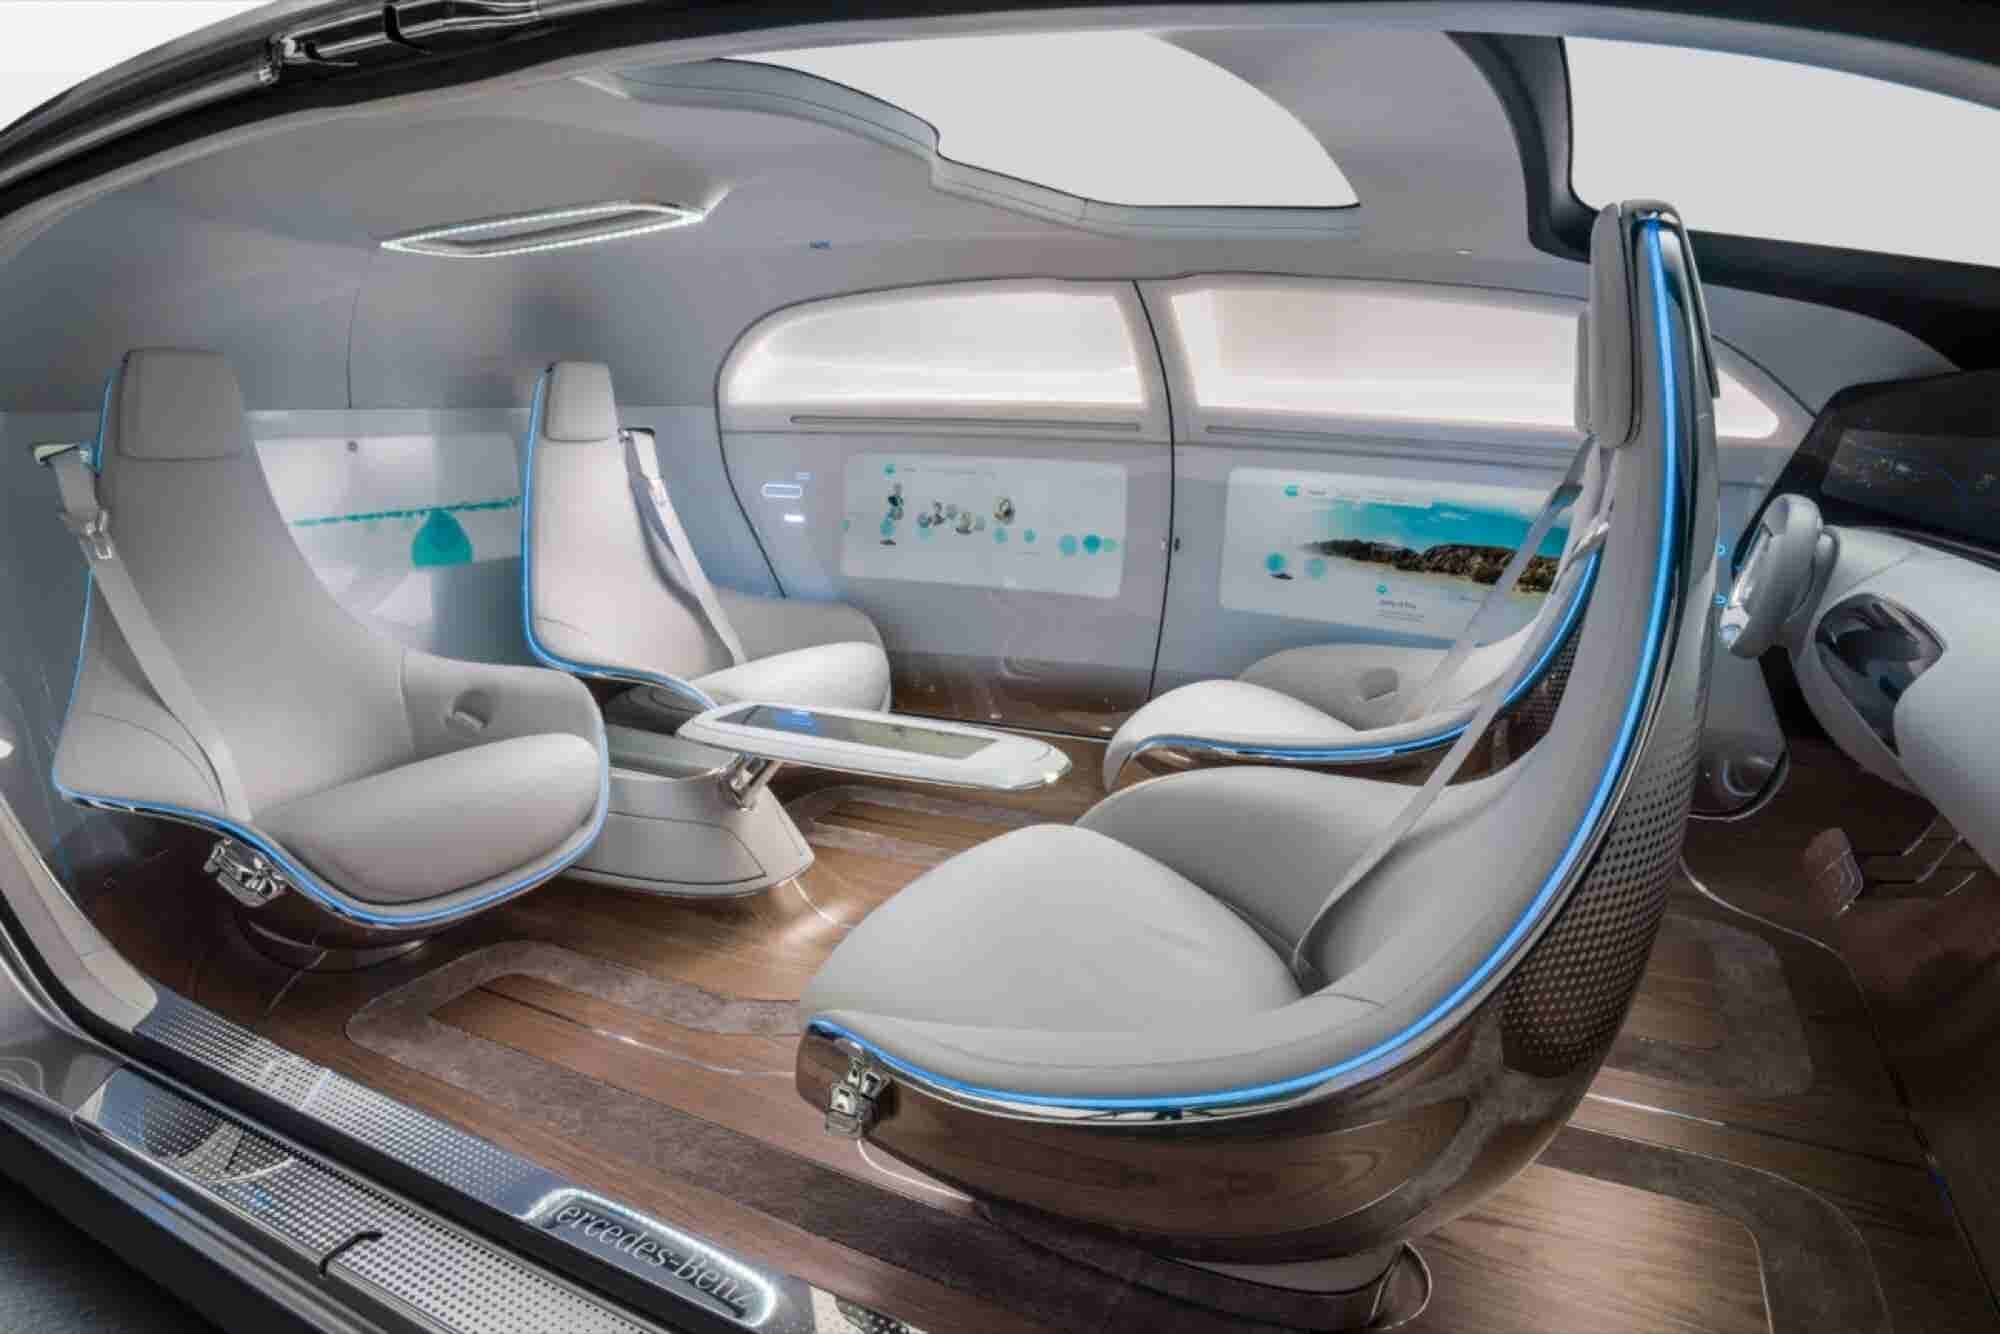 Mercedes-Benz Launches F 015 Luxury In Motion Concept Car